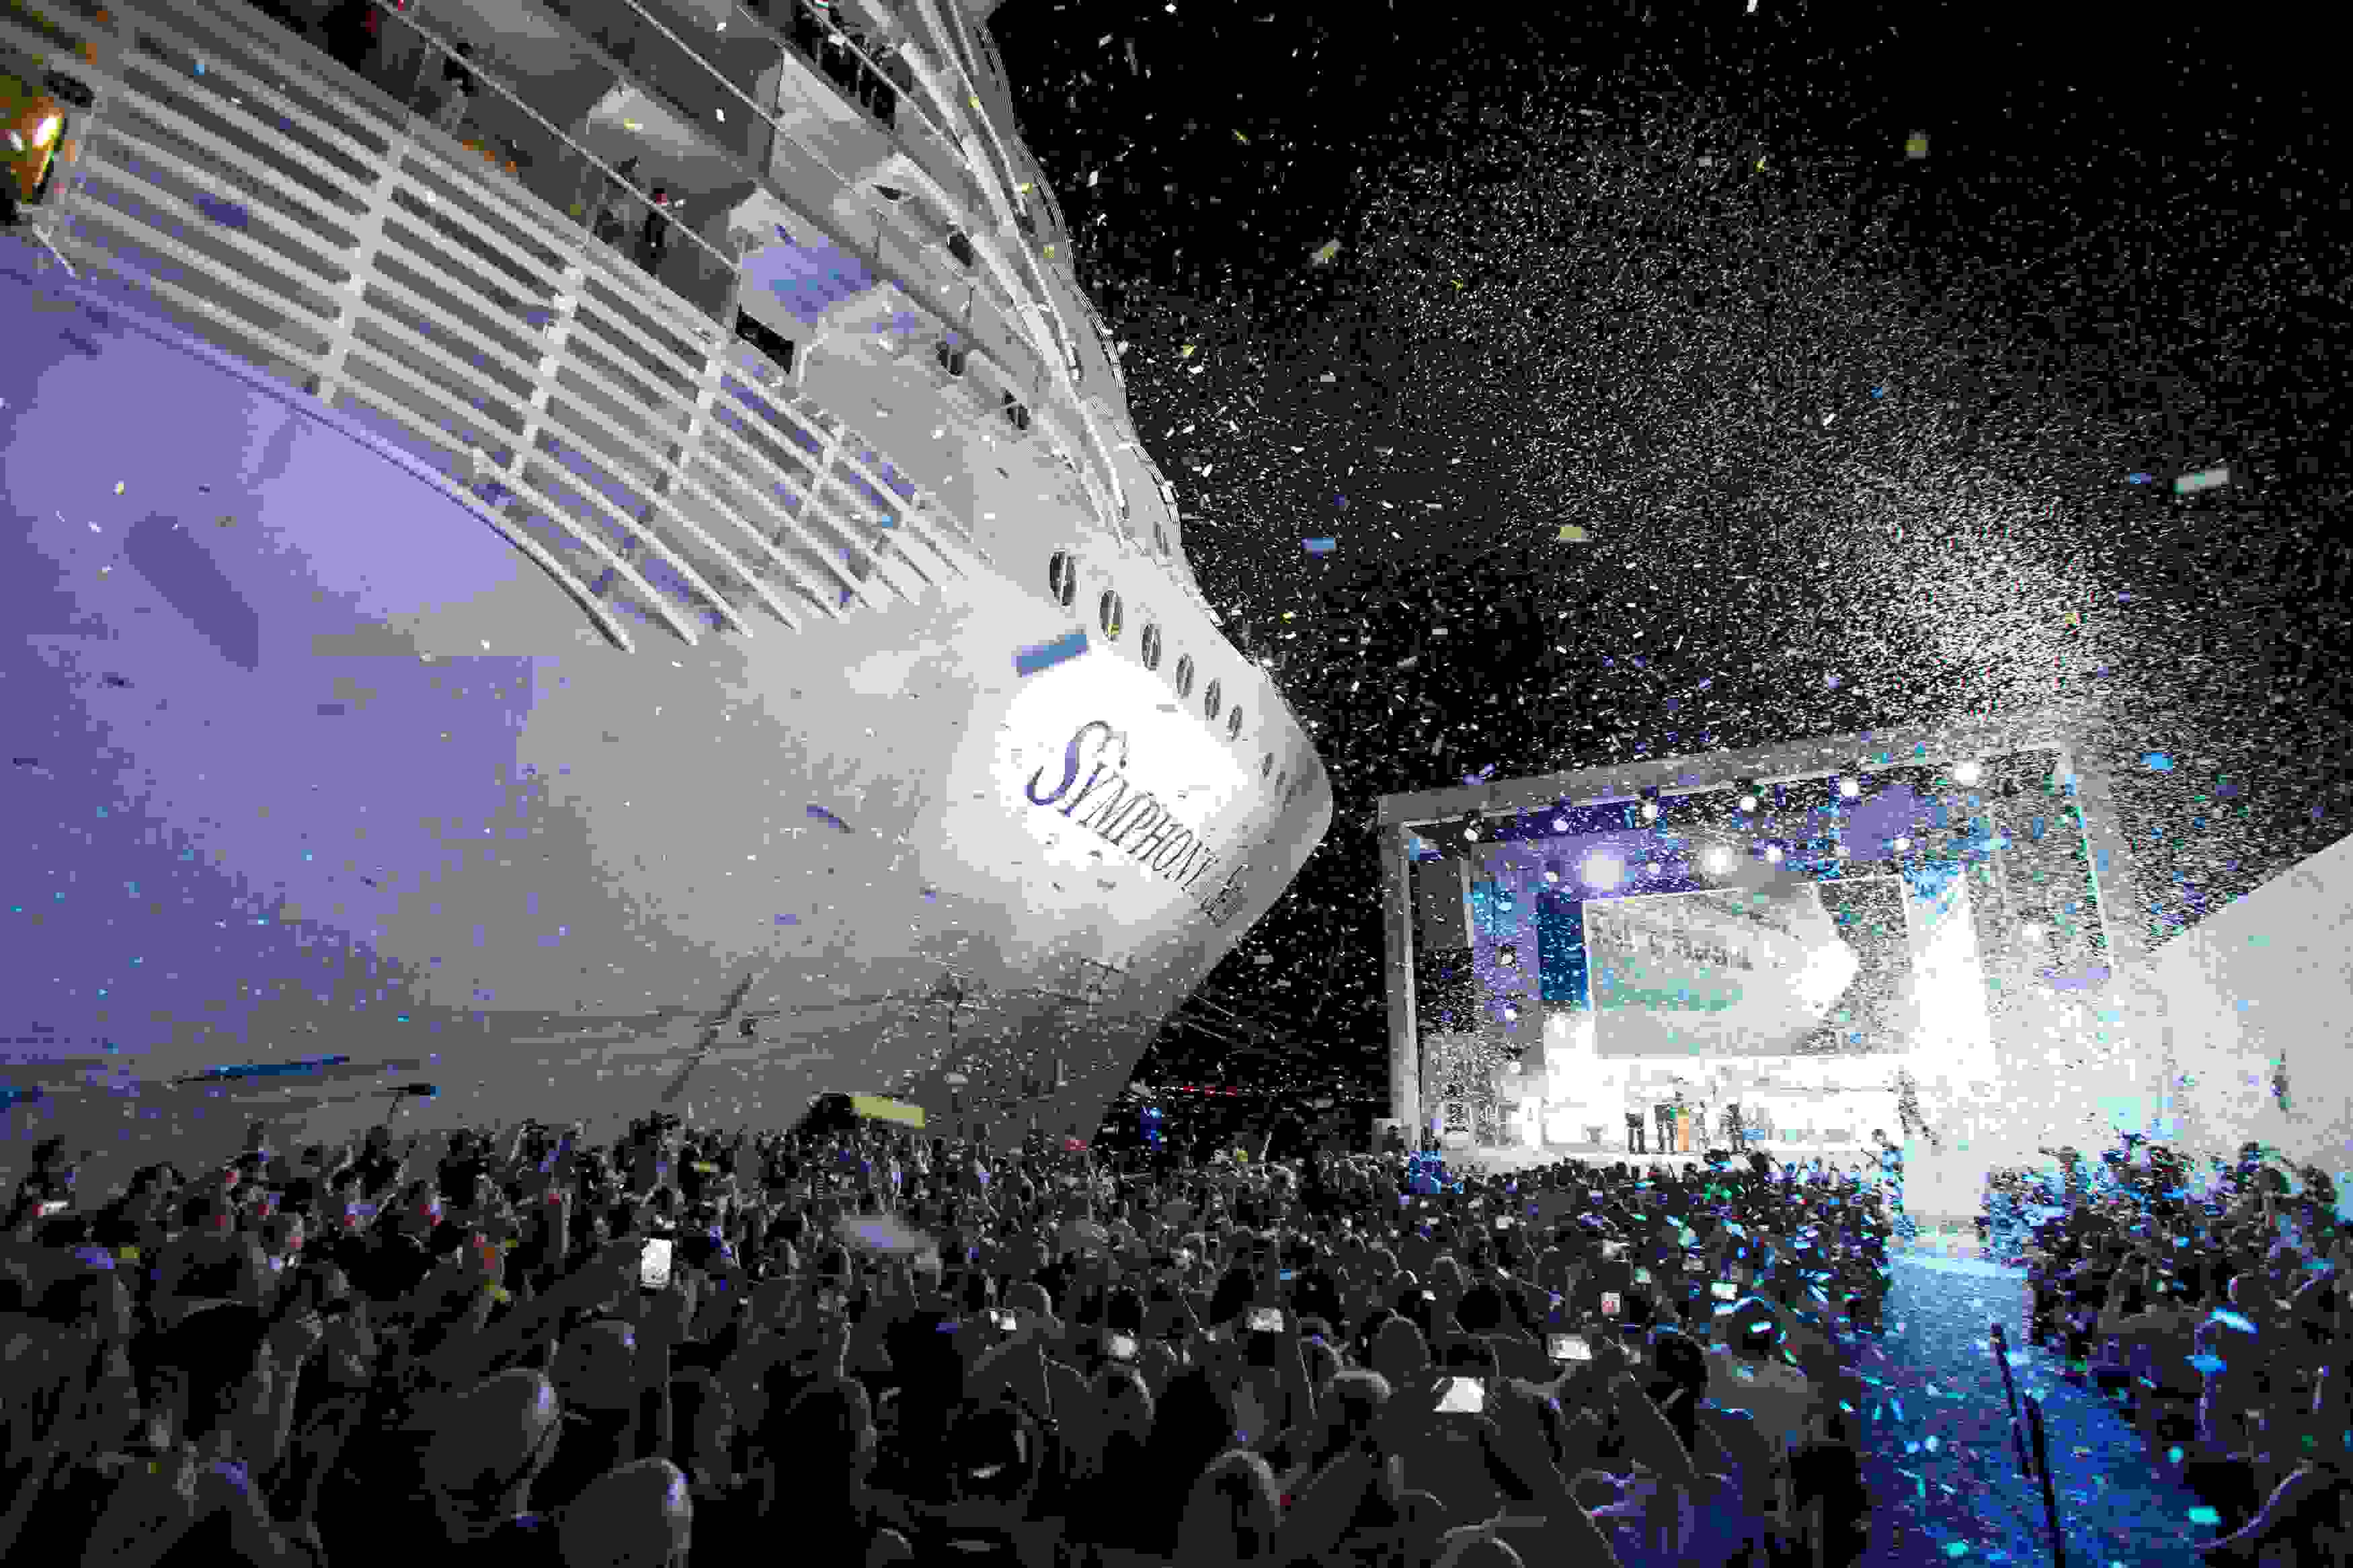 Symphony of the Seas gedoopt